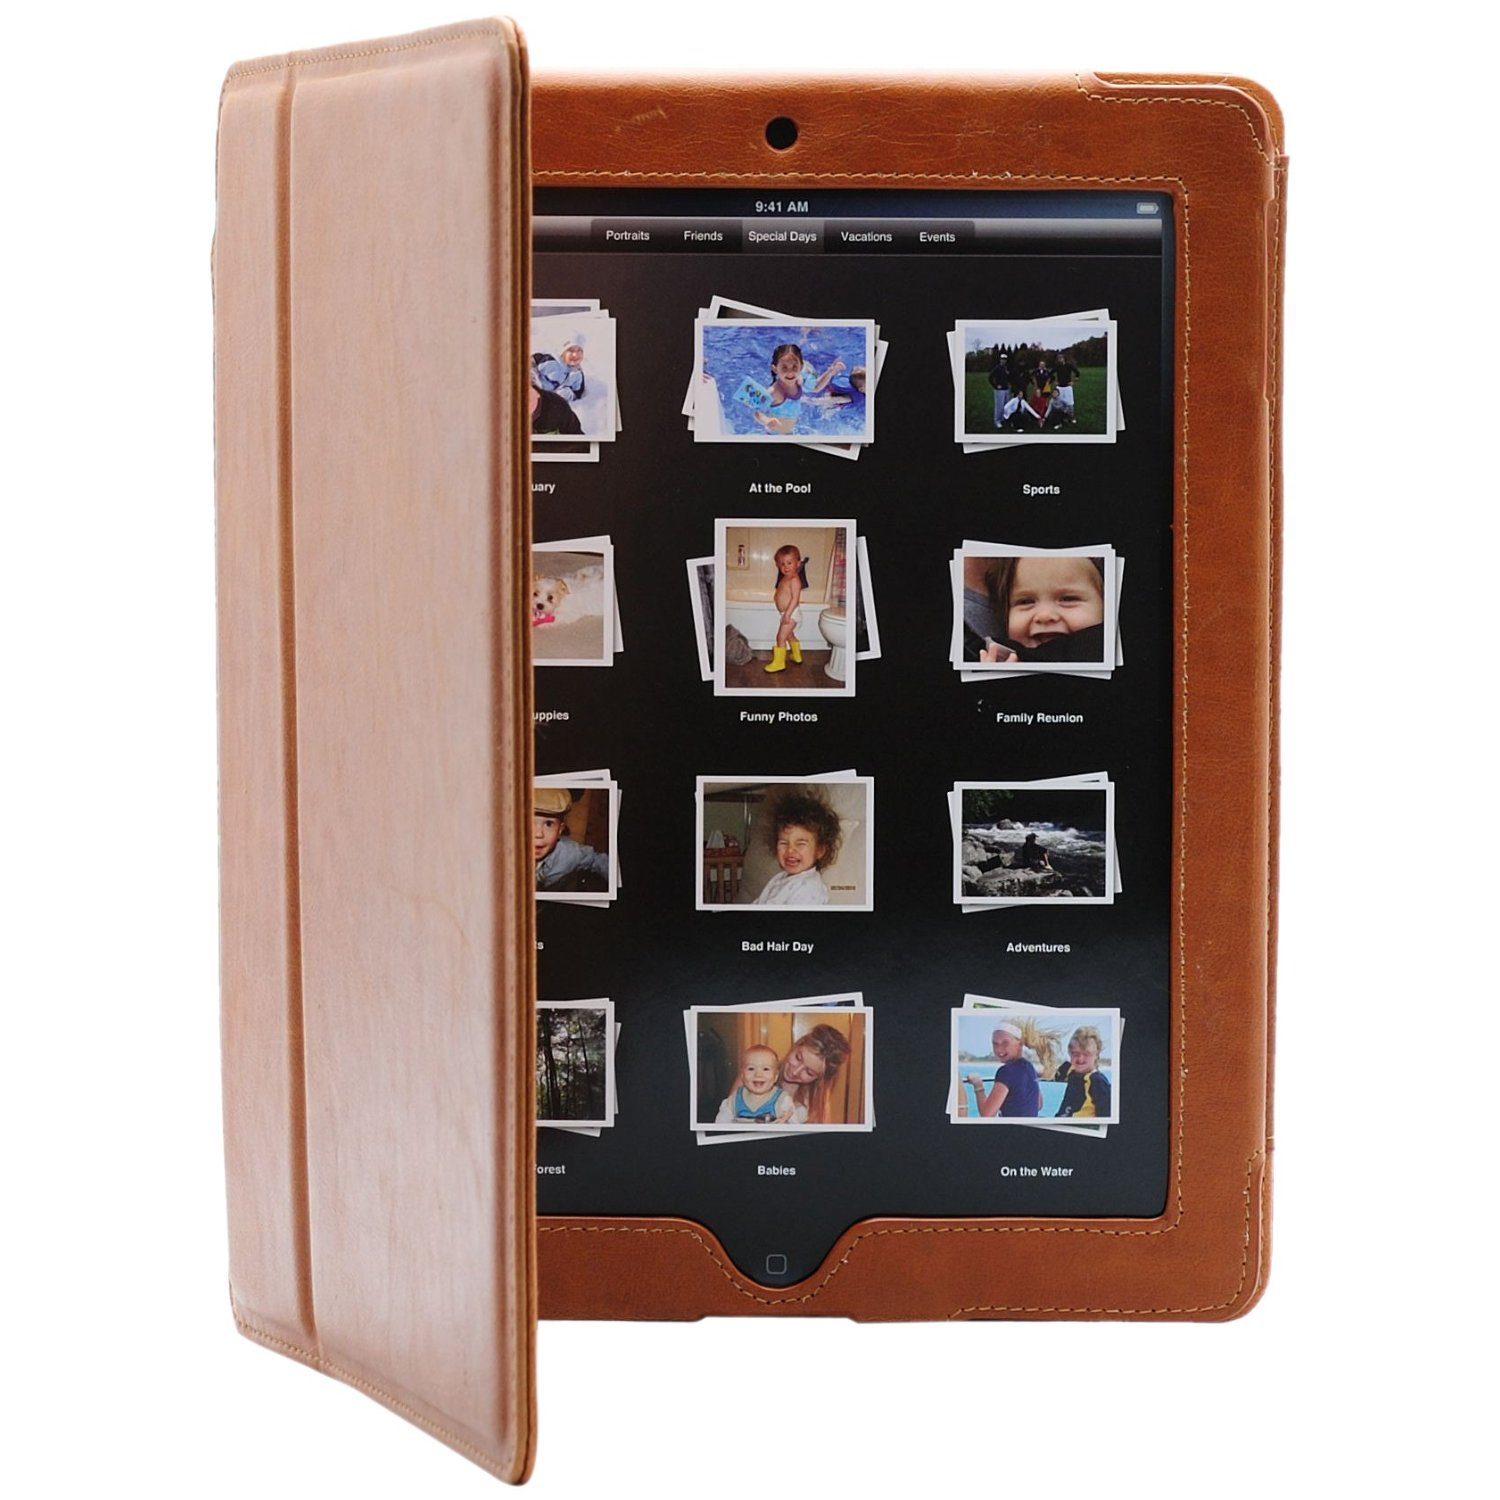 icon brown book case 10 Best Apple iPad 2 Covers & Cases